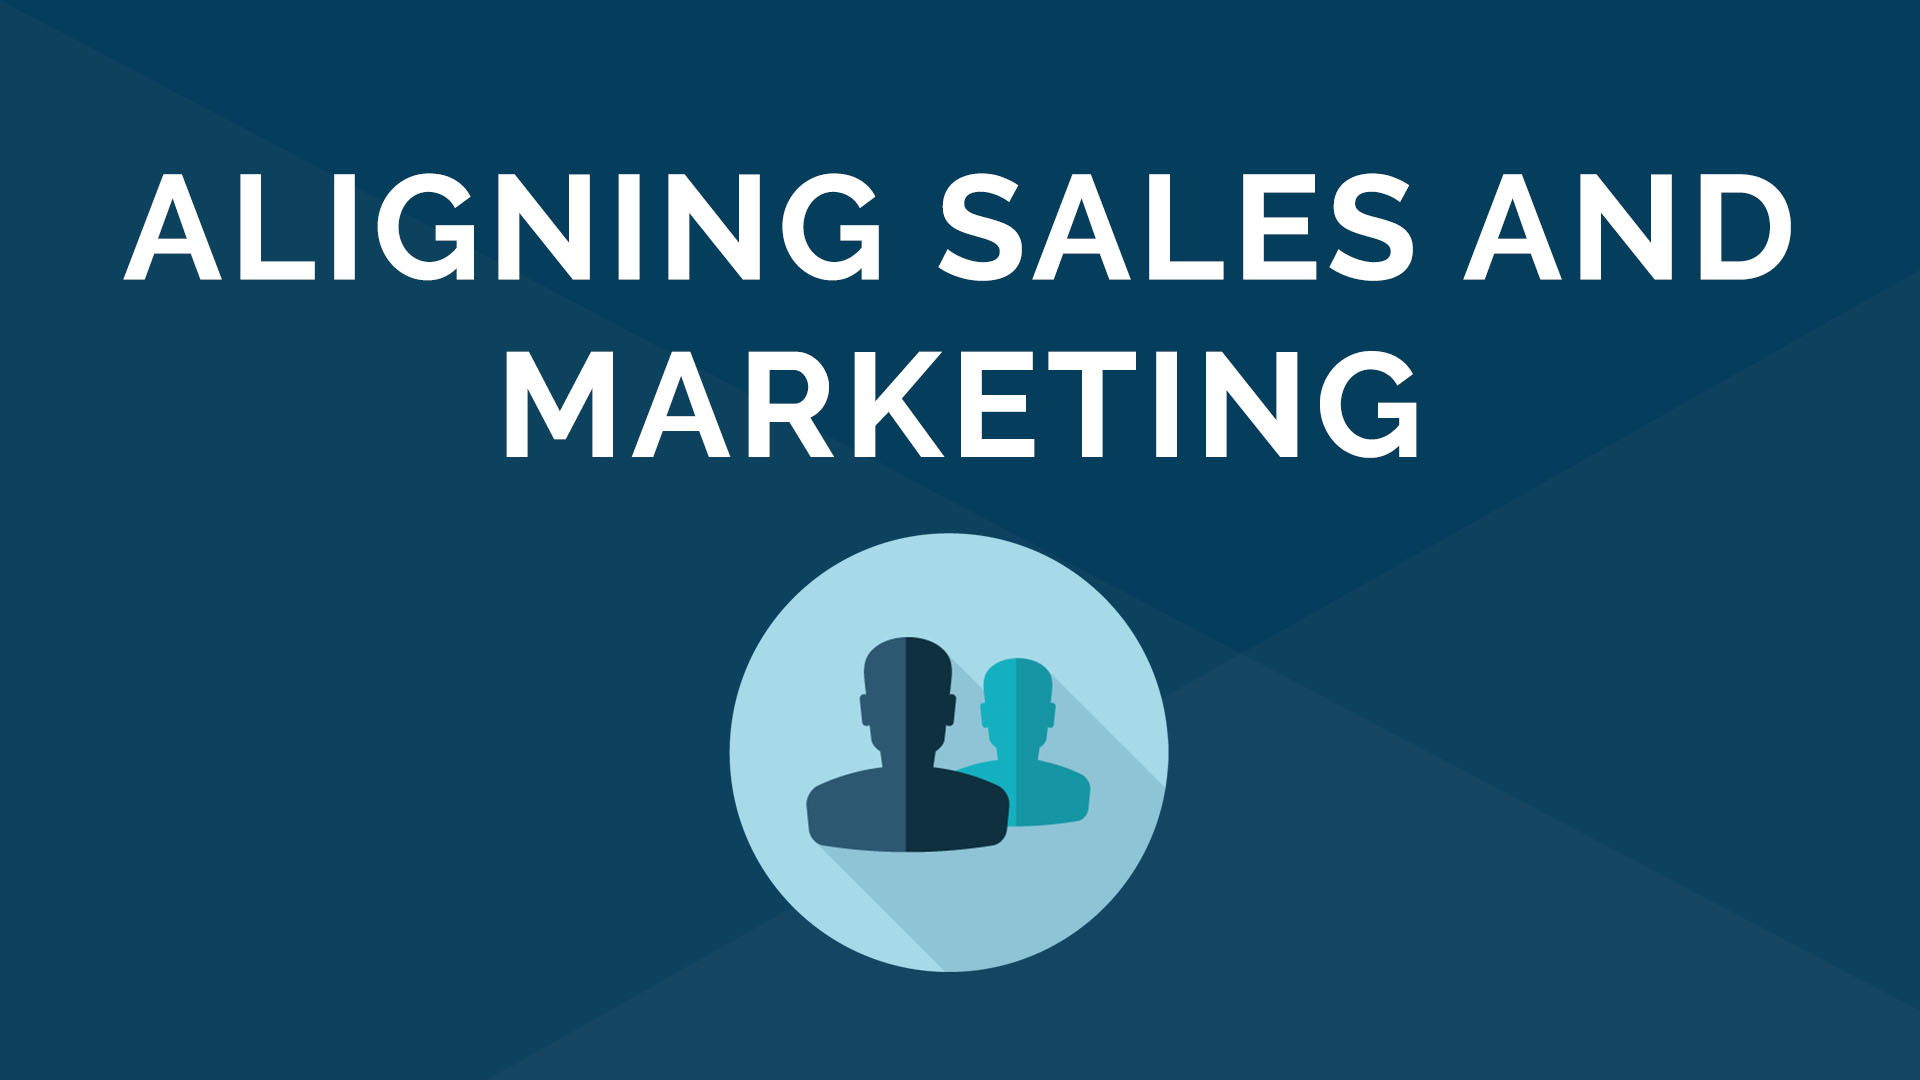 Aligning Marketing and Sales - How to Speak the Same Language Using Technology